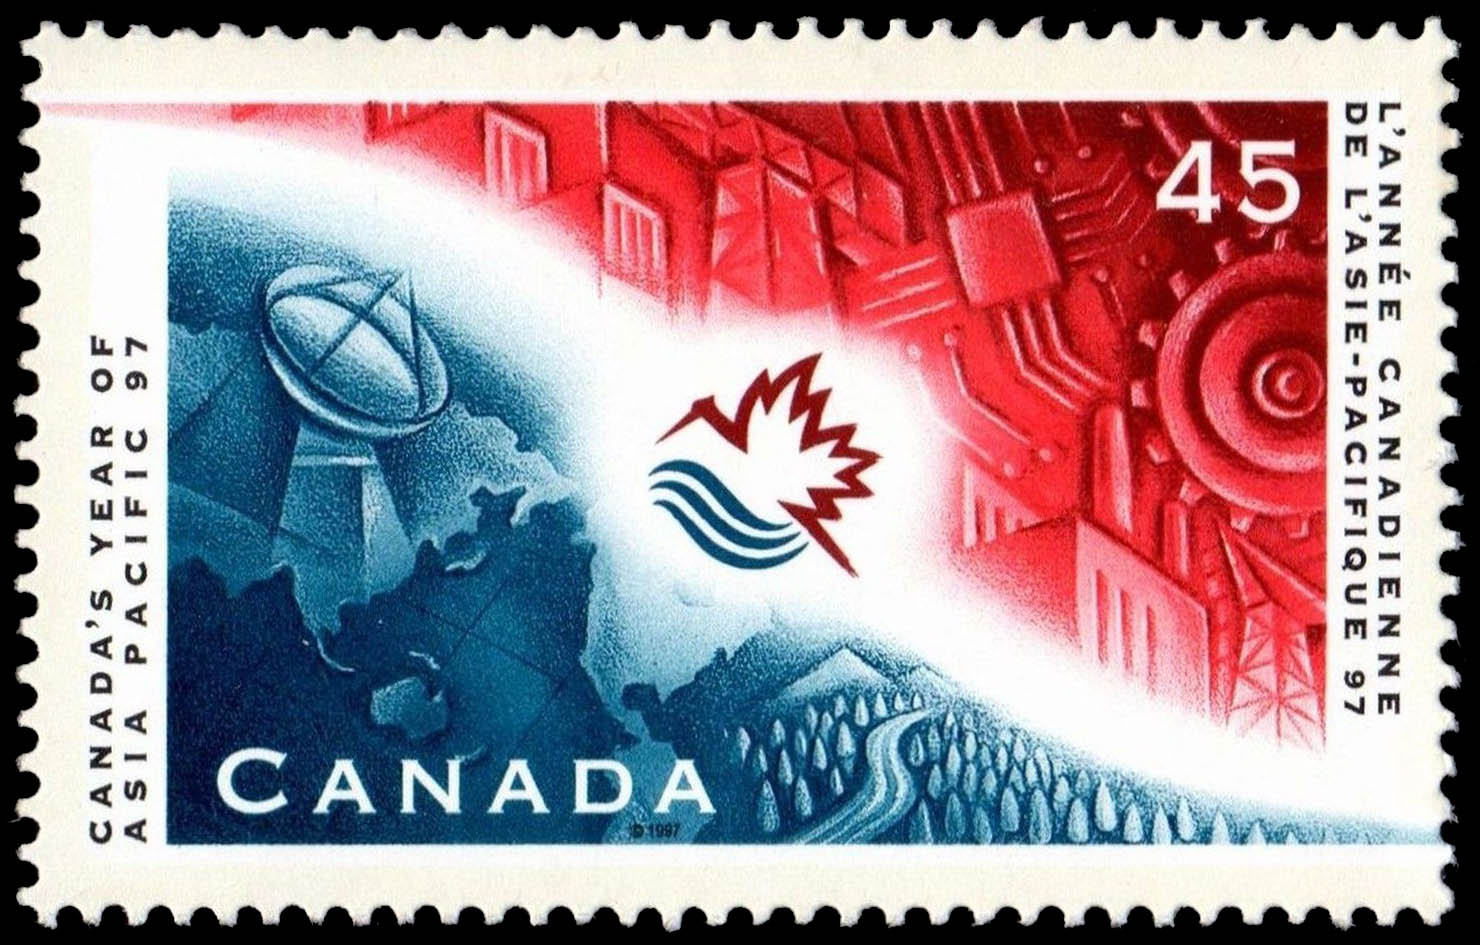 Canada's Year of Asia Pacific 97 Canada Postage Stamp